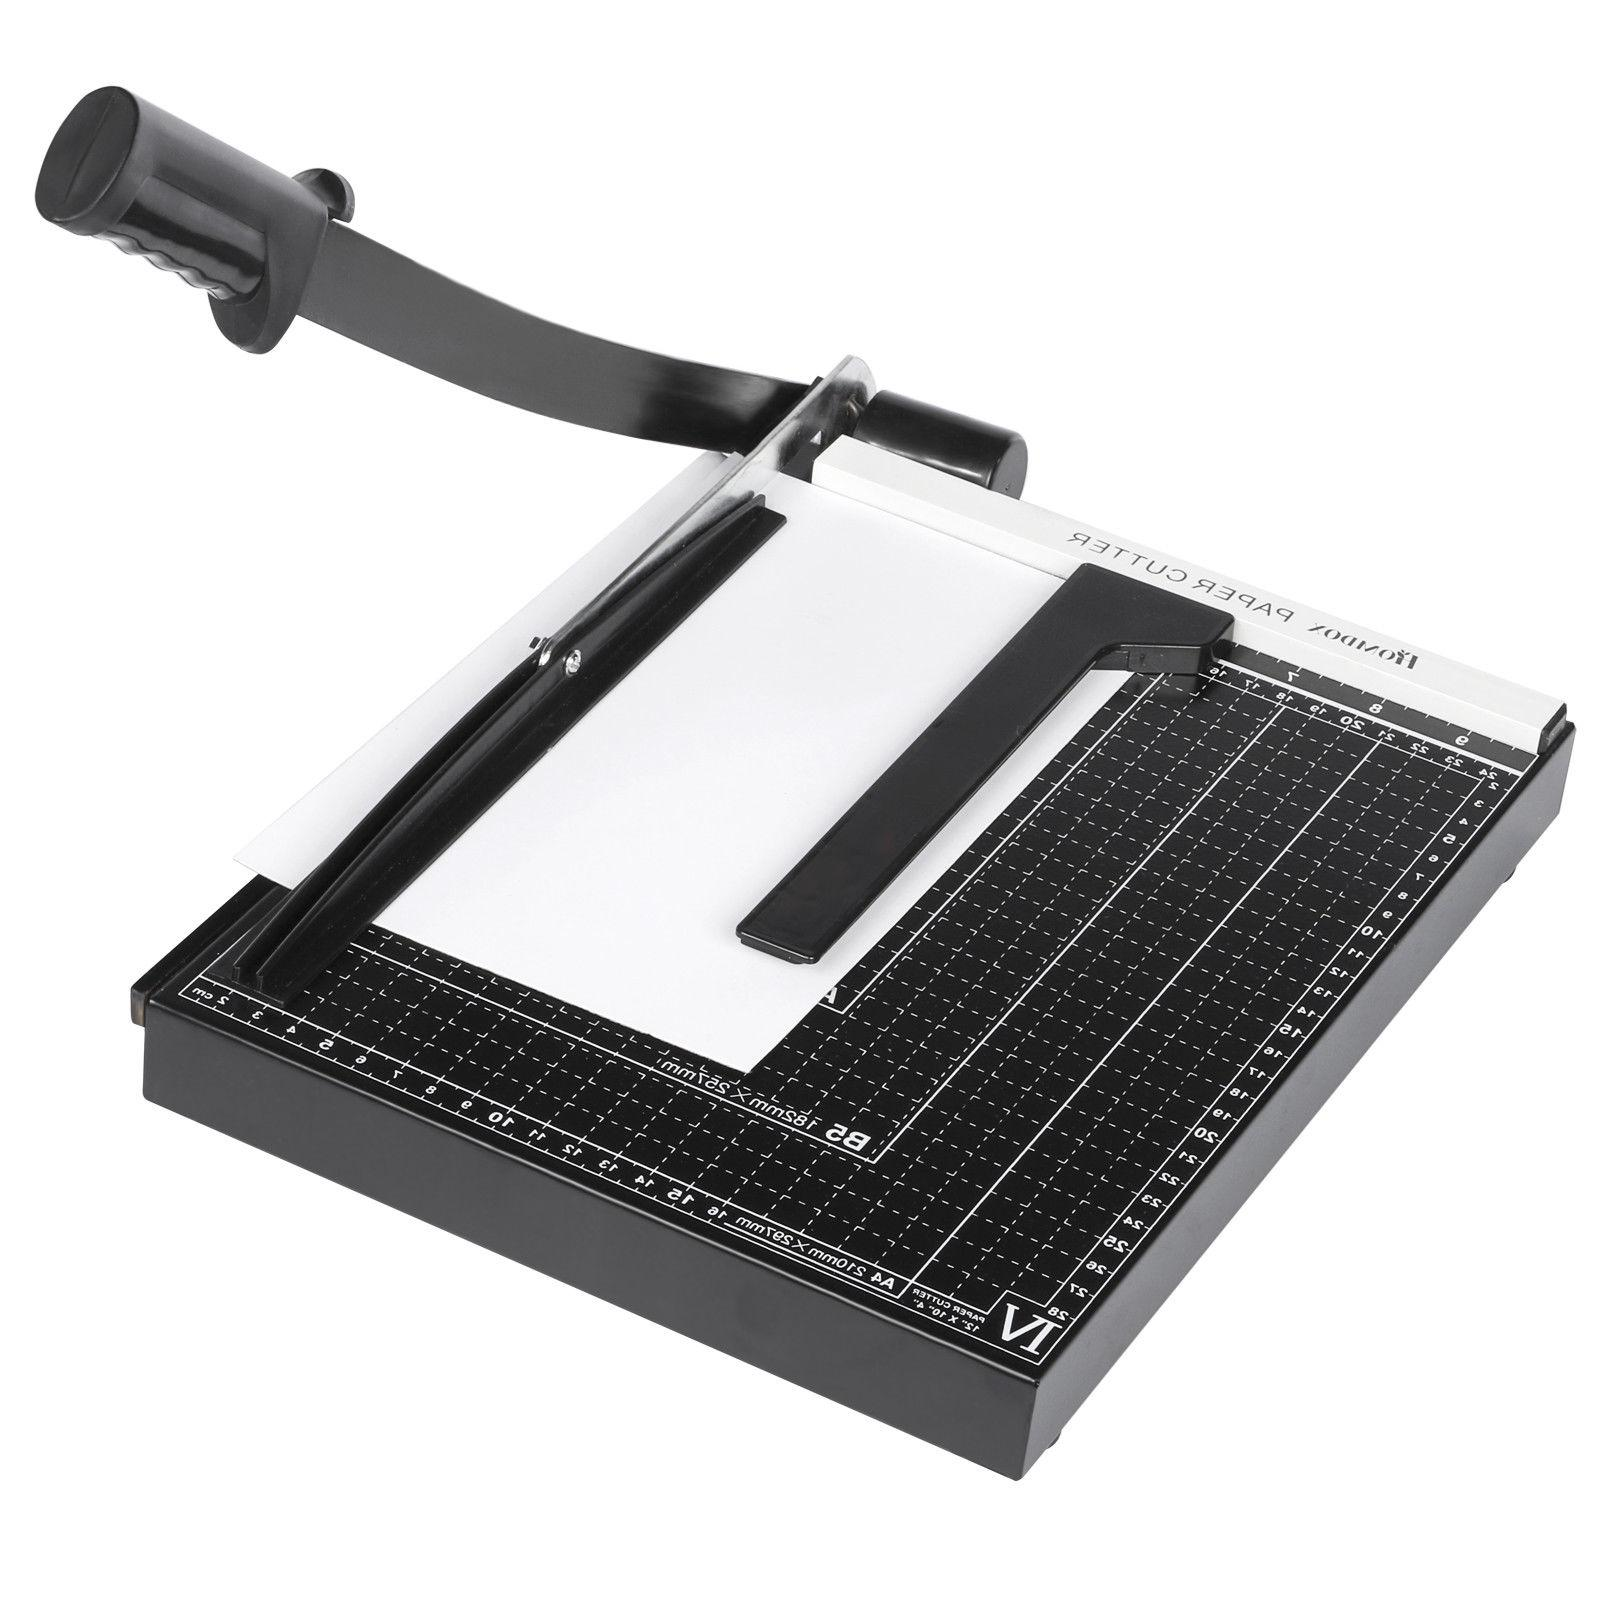 18 Inch B7 Heavy Paper Cutter Trimmer Booking Blade-